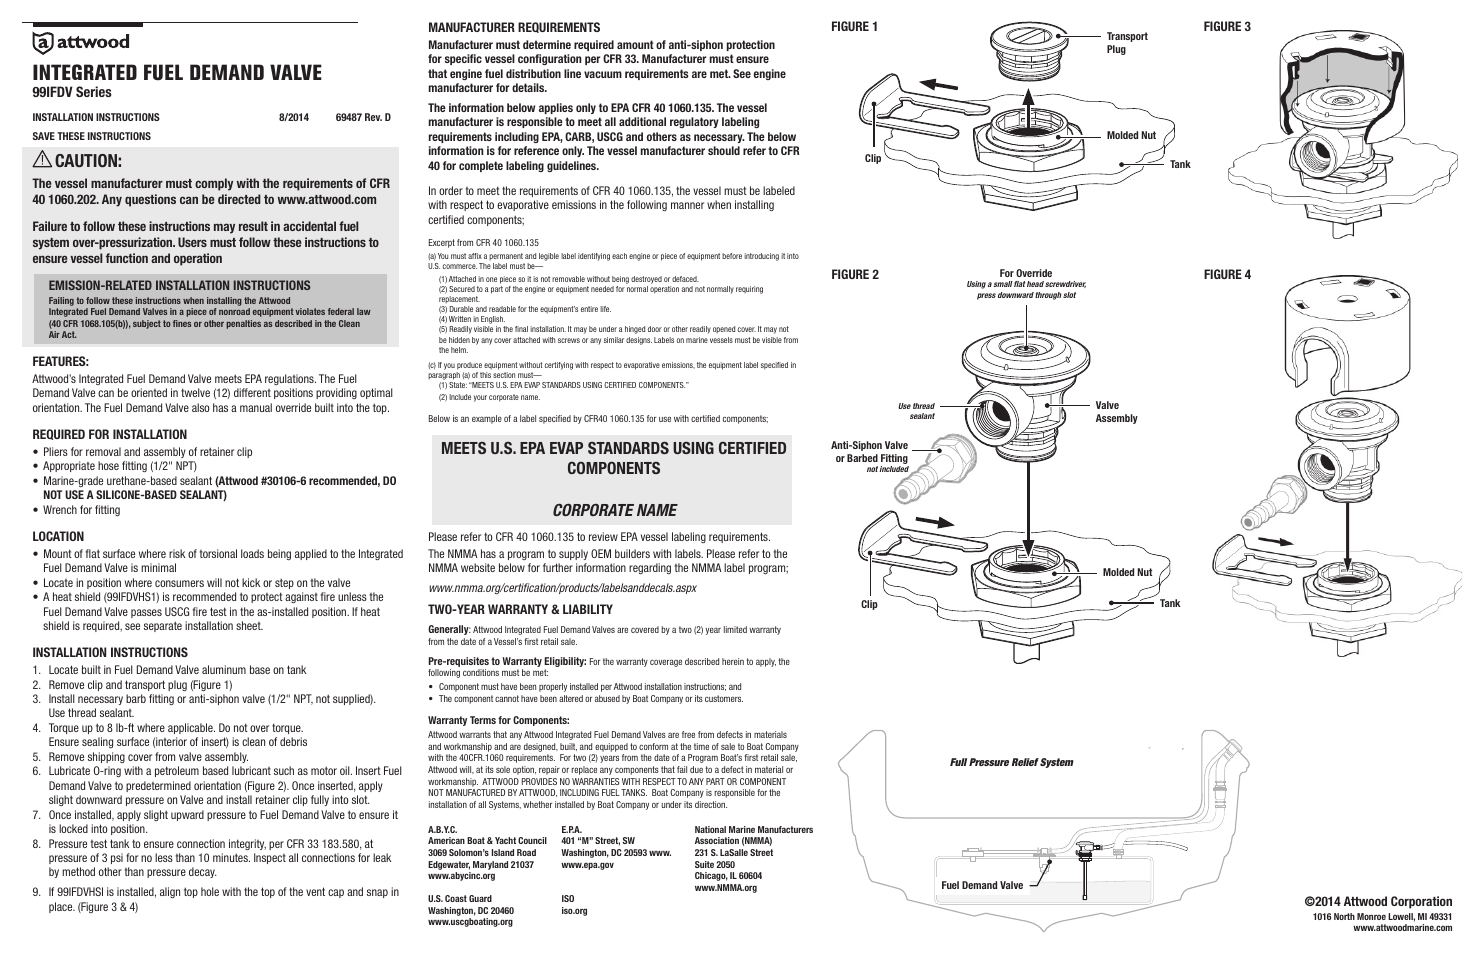 Attwood Integrated Fuel Demand Valve User Manual | 1 page